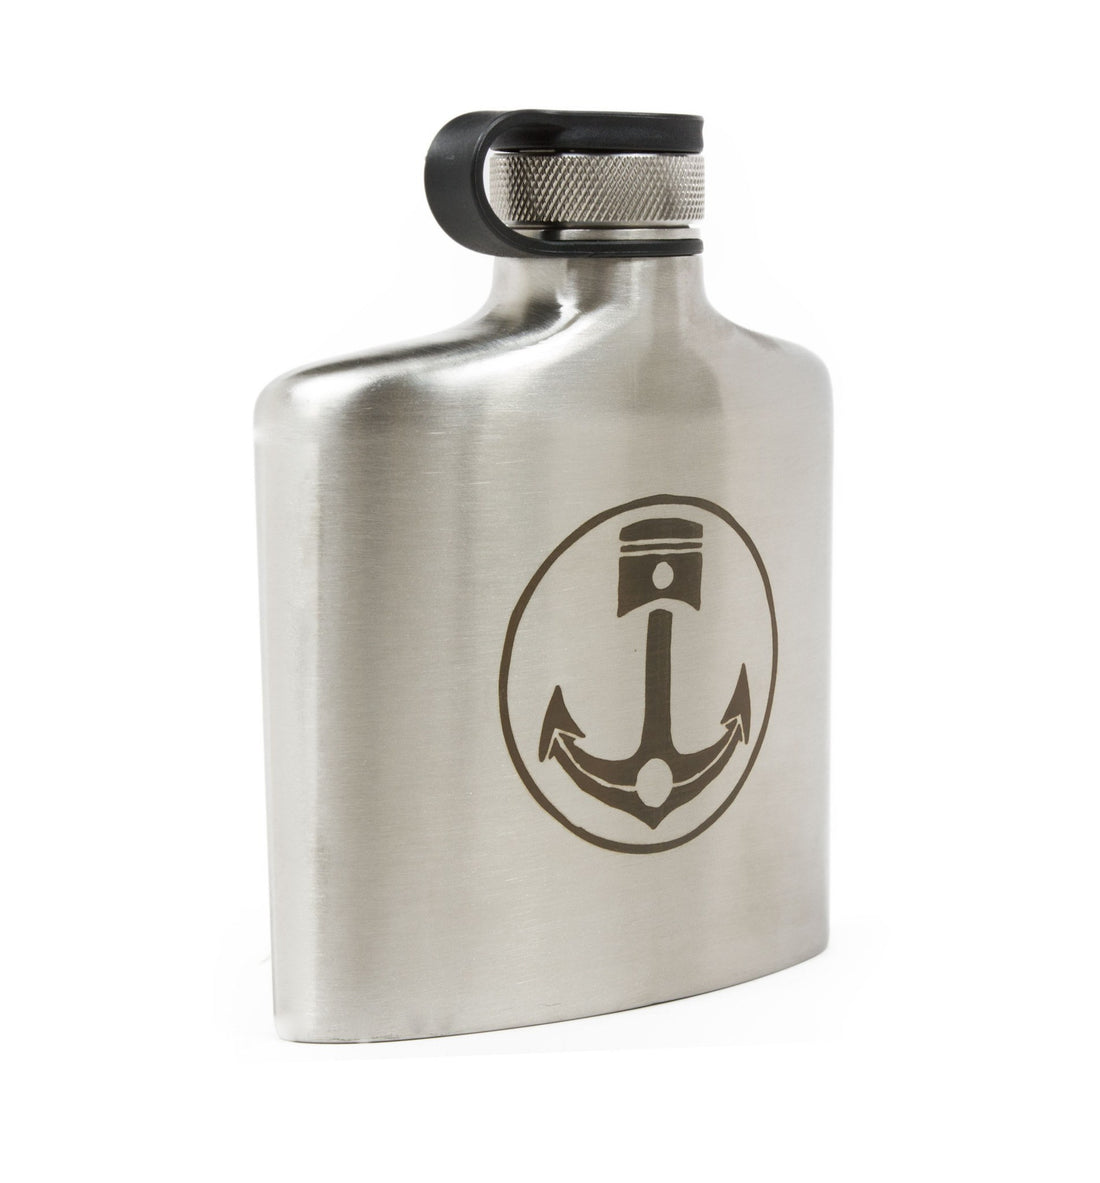 INR 6oz Flask - Houseware: Flasks - Iron and Resin